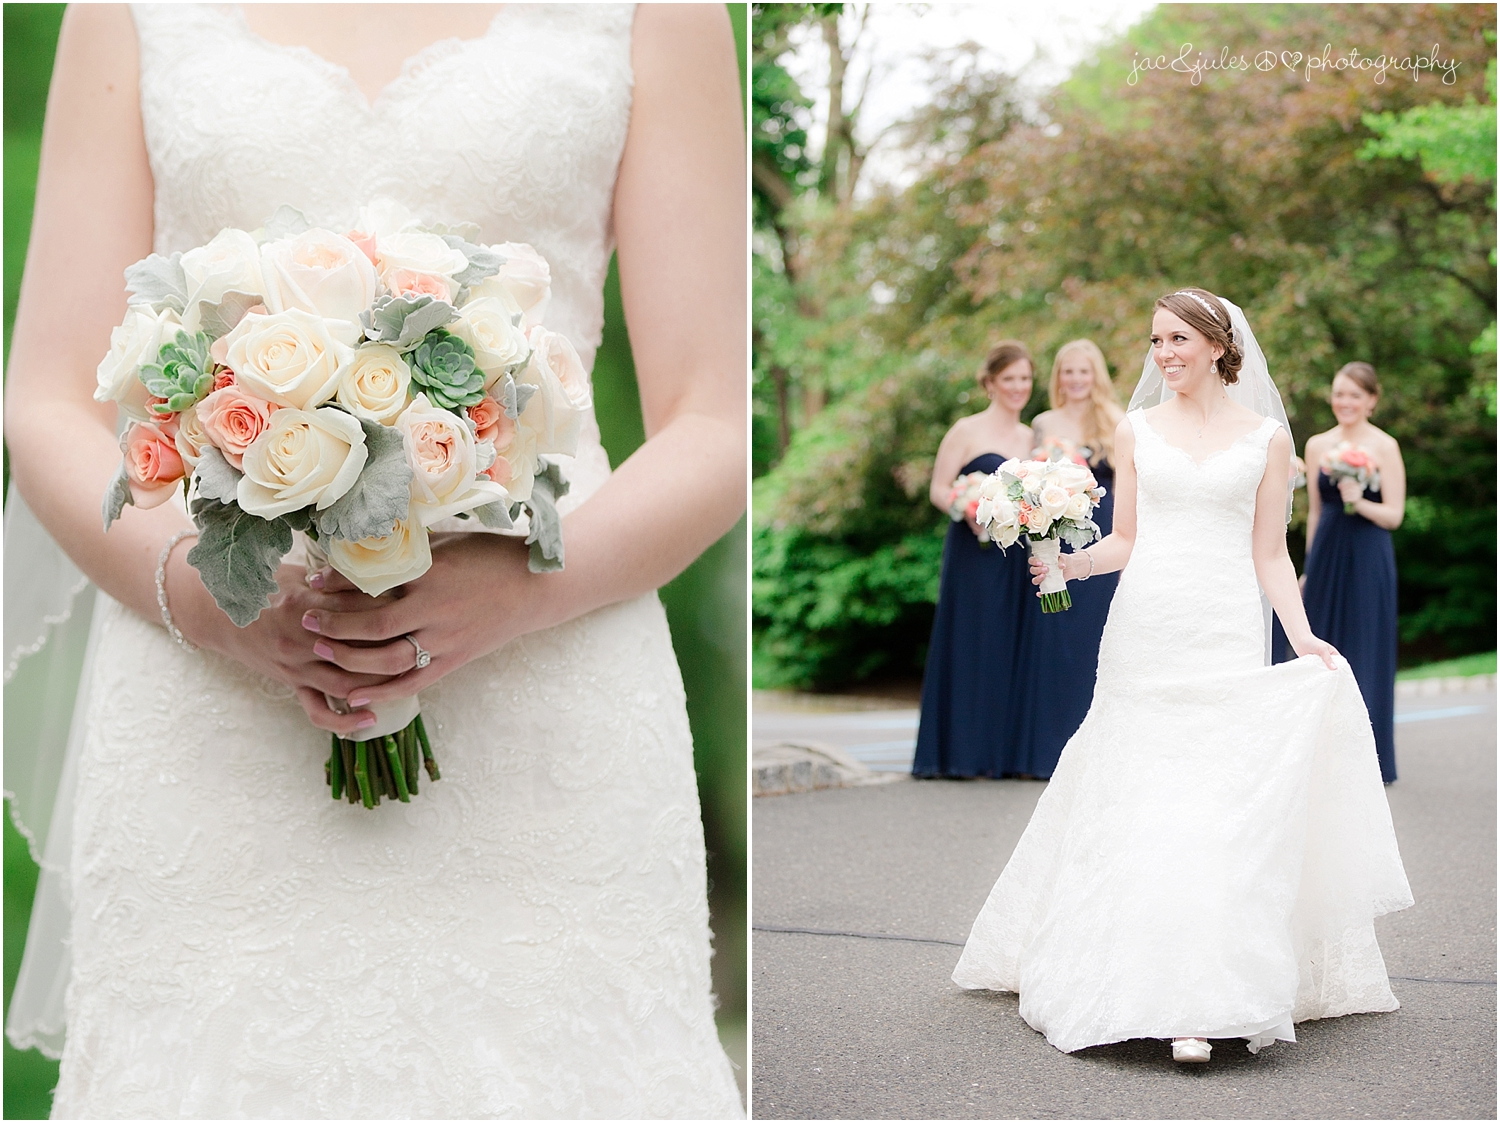 jacnjules photographs a bride on her wedding day and her succulent bouquet at the olde mill inn in basking ridge nj